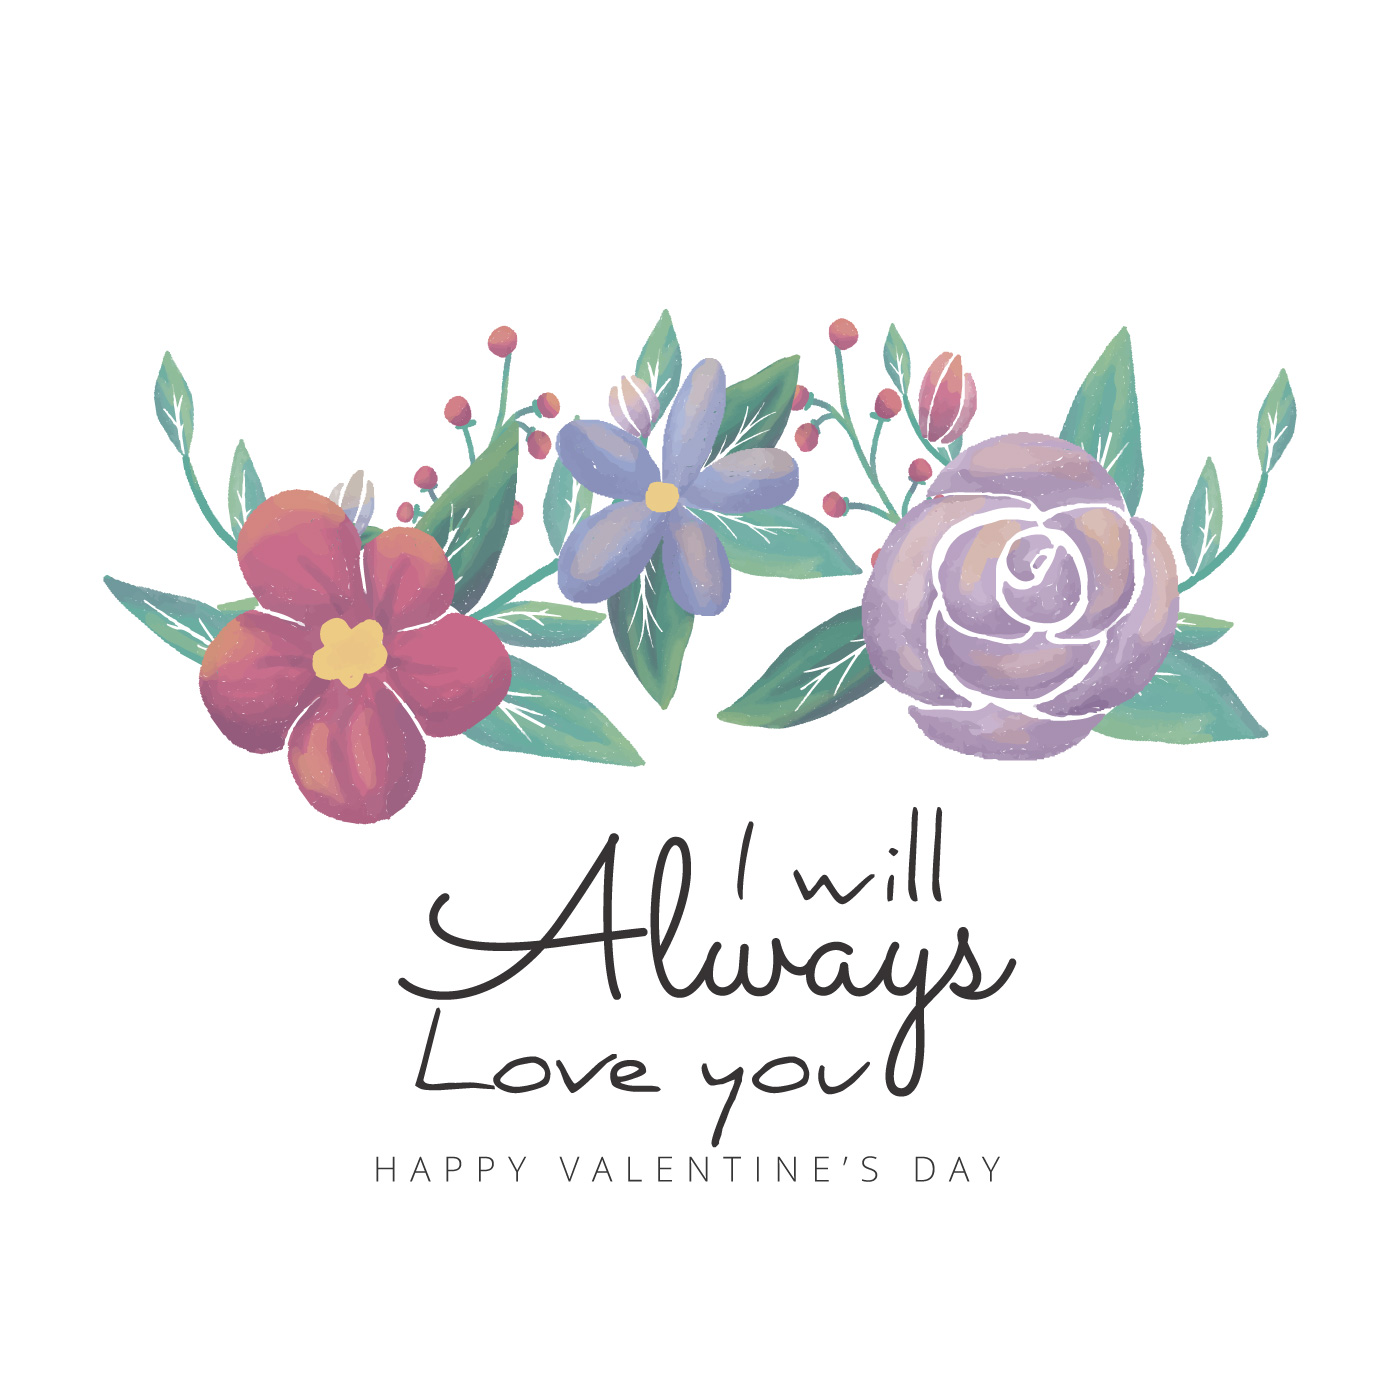 Cute Background Flowers And Leaves With Valentine's Quote